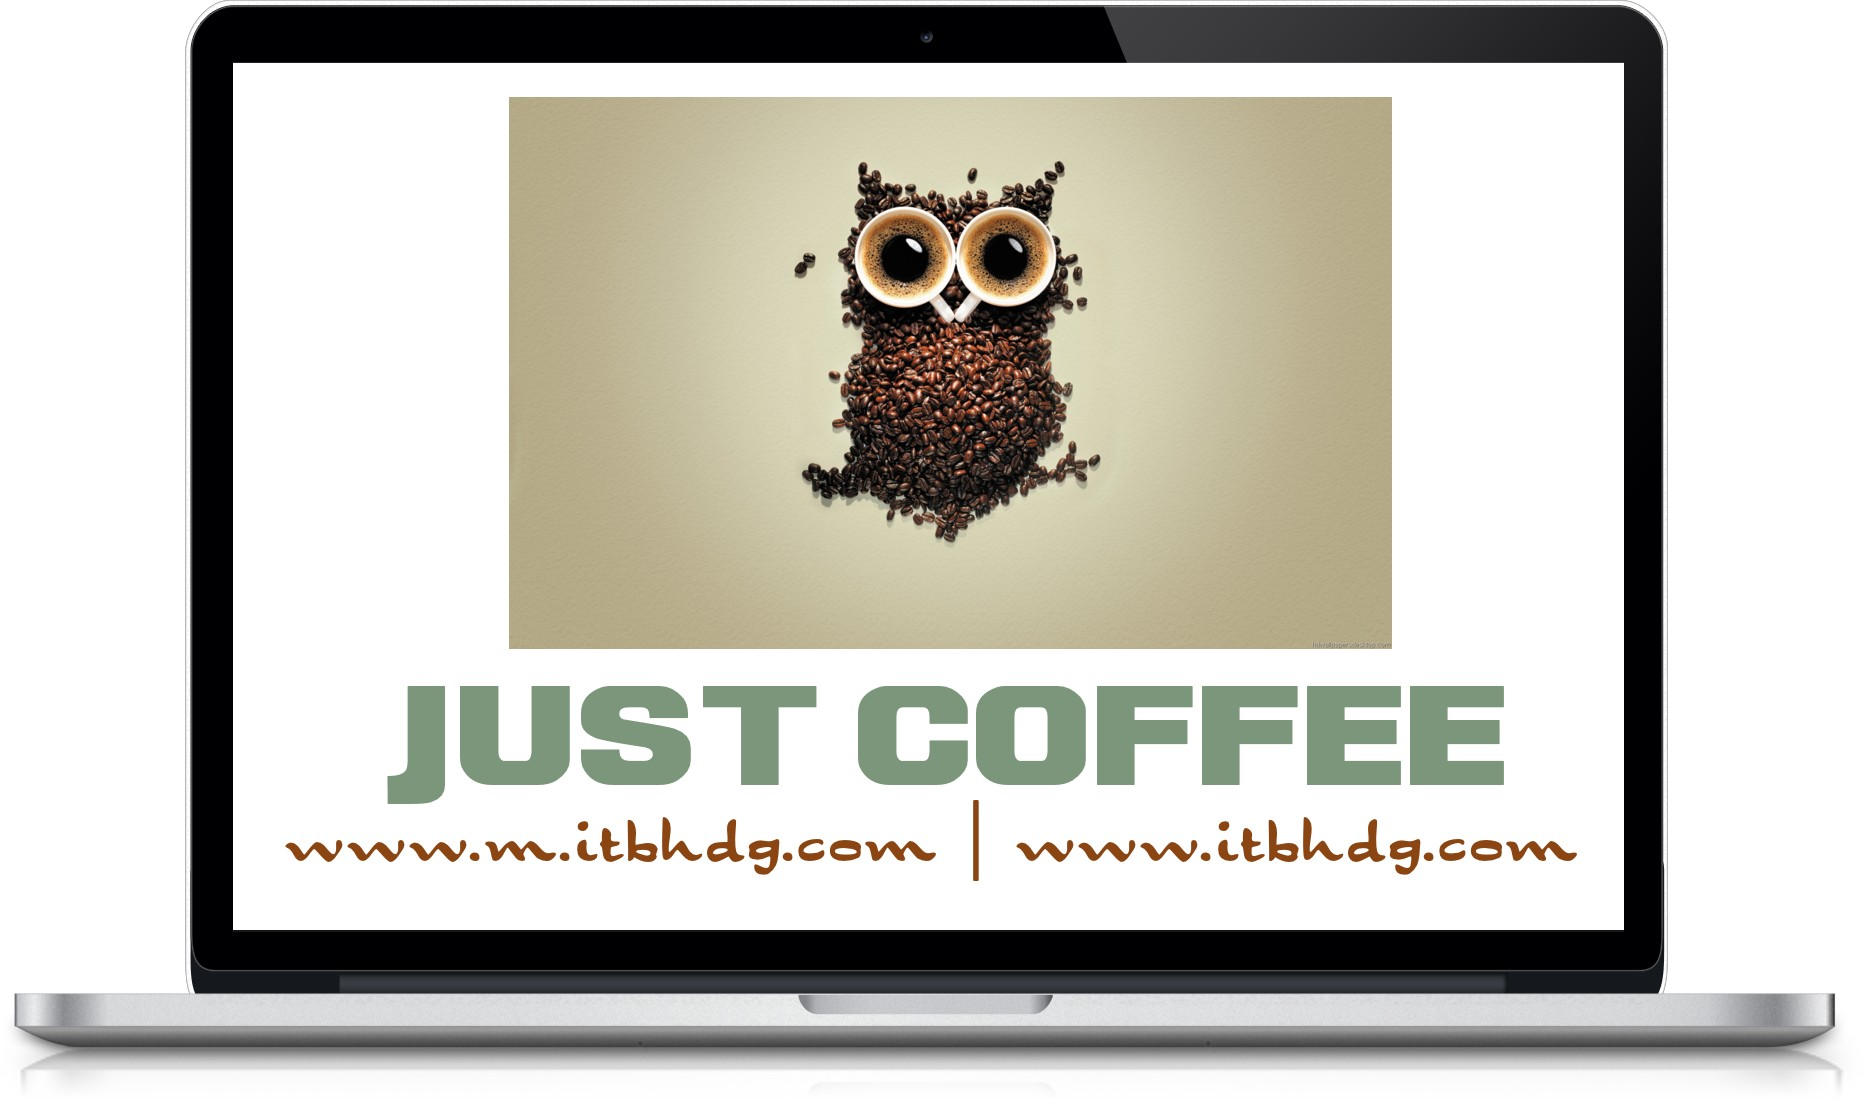 We put the time and resources into traveling to various countries to build new relationships and support existing ones, so we can source as much of our coffee as possible through Direct Trade | https://www.itbhdg.com/english/coffee-beans.php